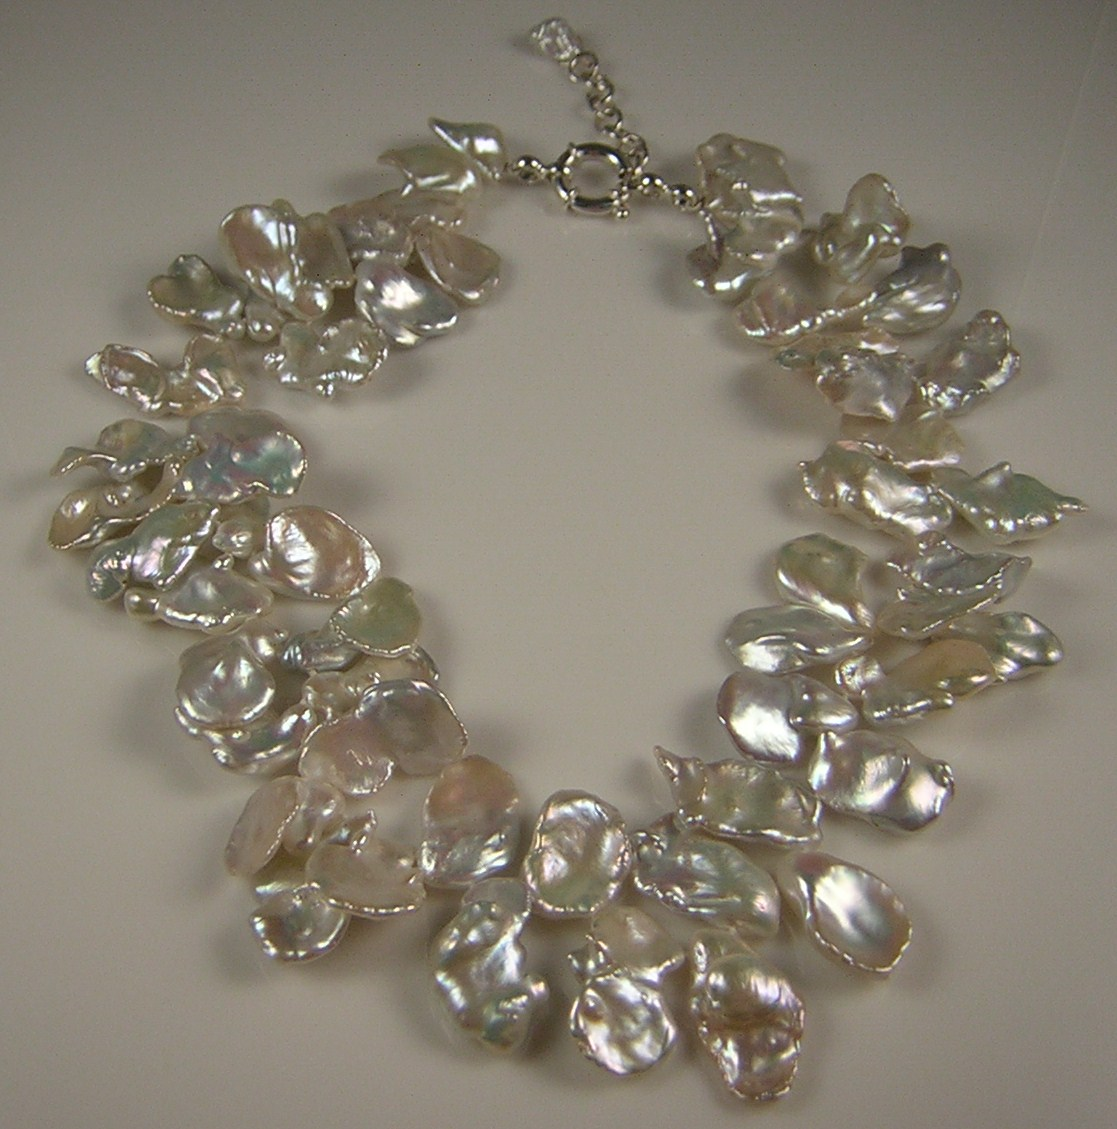 Pearls By Fox: 20mm Keshi / Poppy Pearl Necklace